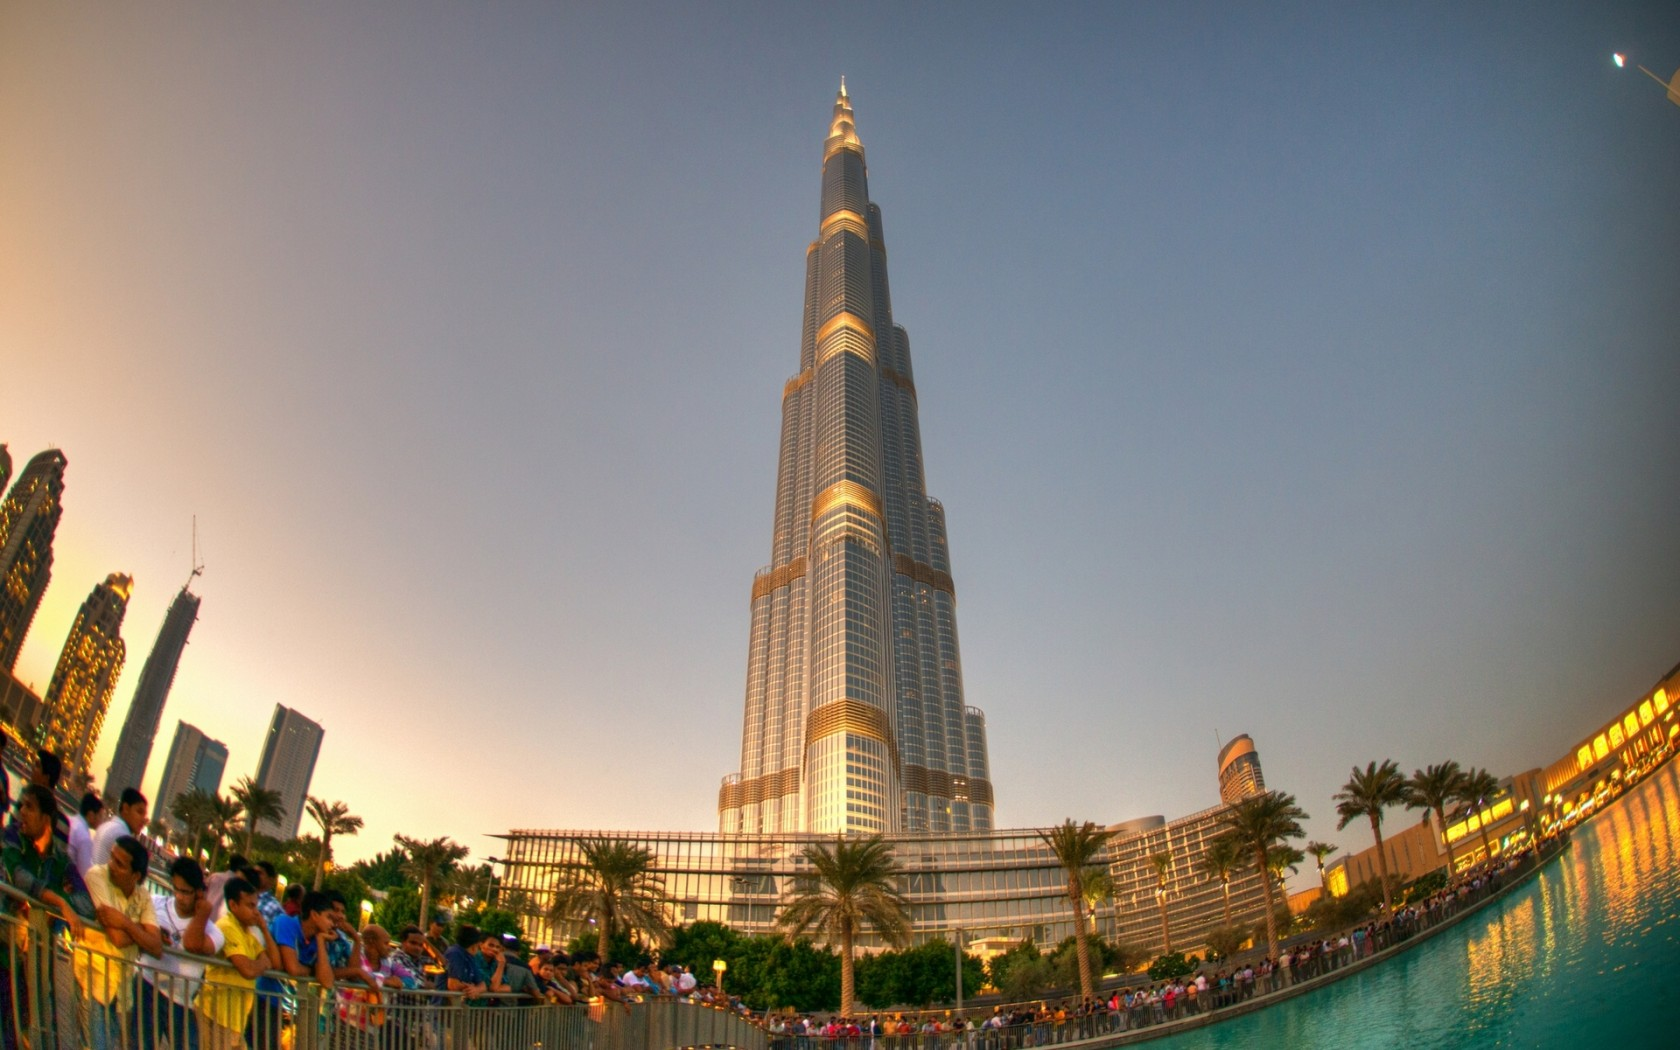 Burj khalifa hotel pictures 20 Top-Rated Tourist Attractions in Dubai PlanetWare